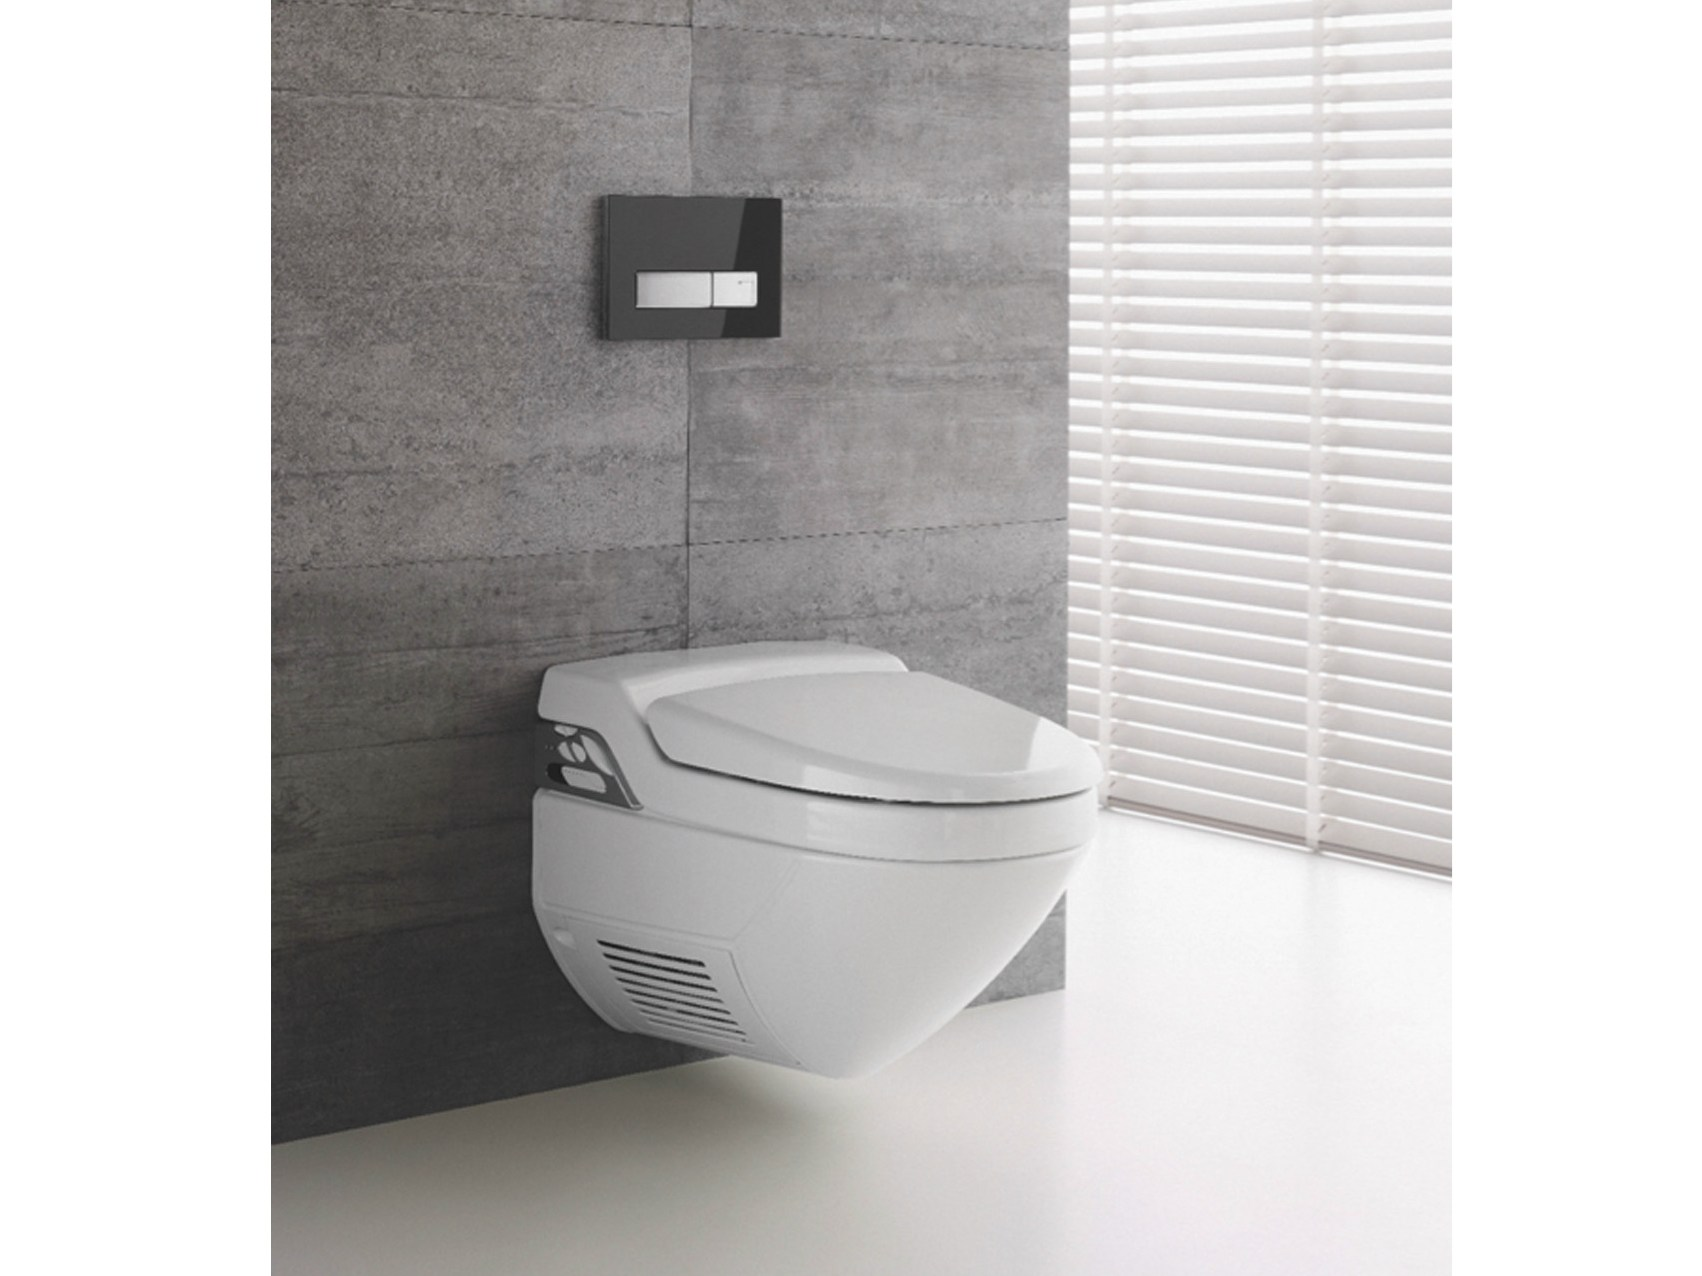 wc bidet in ceramica aquaclean 8000 plus collezione aquaclean by geberit italia. Black Bedroom Furniture Sets. Home Design Ideas